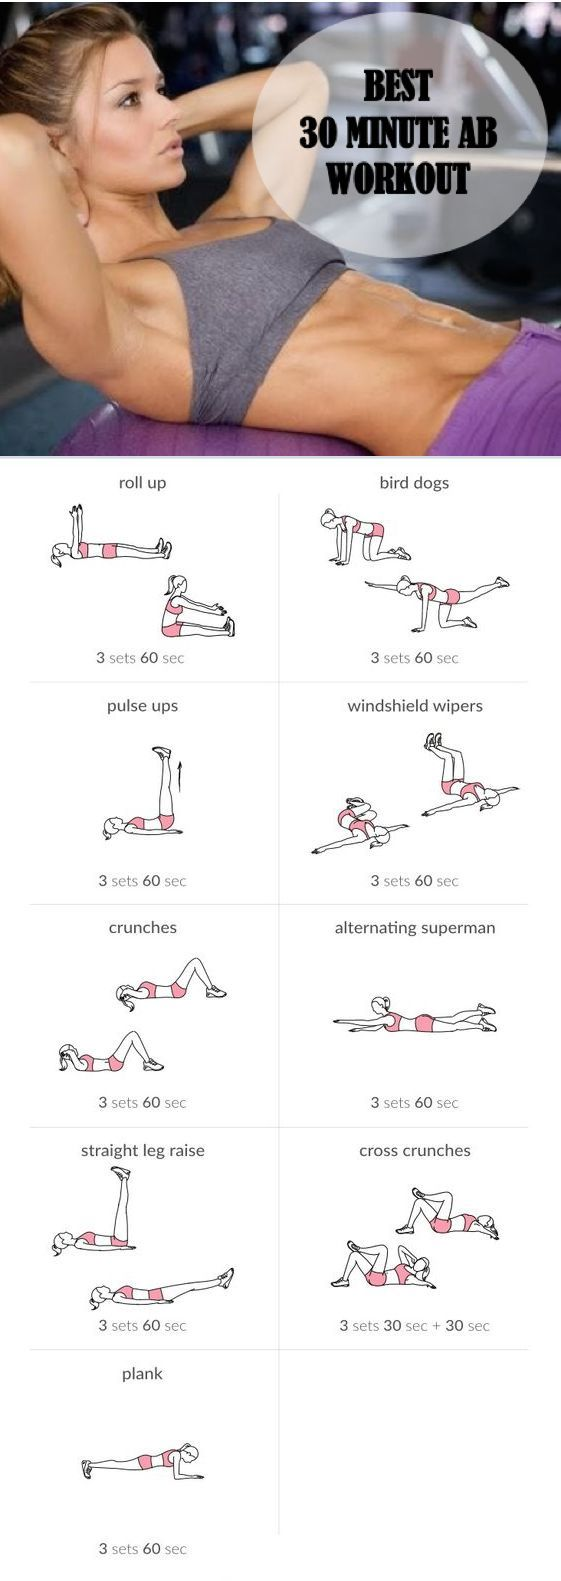 AB WORKOUT - Lunchpails and Lipstick